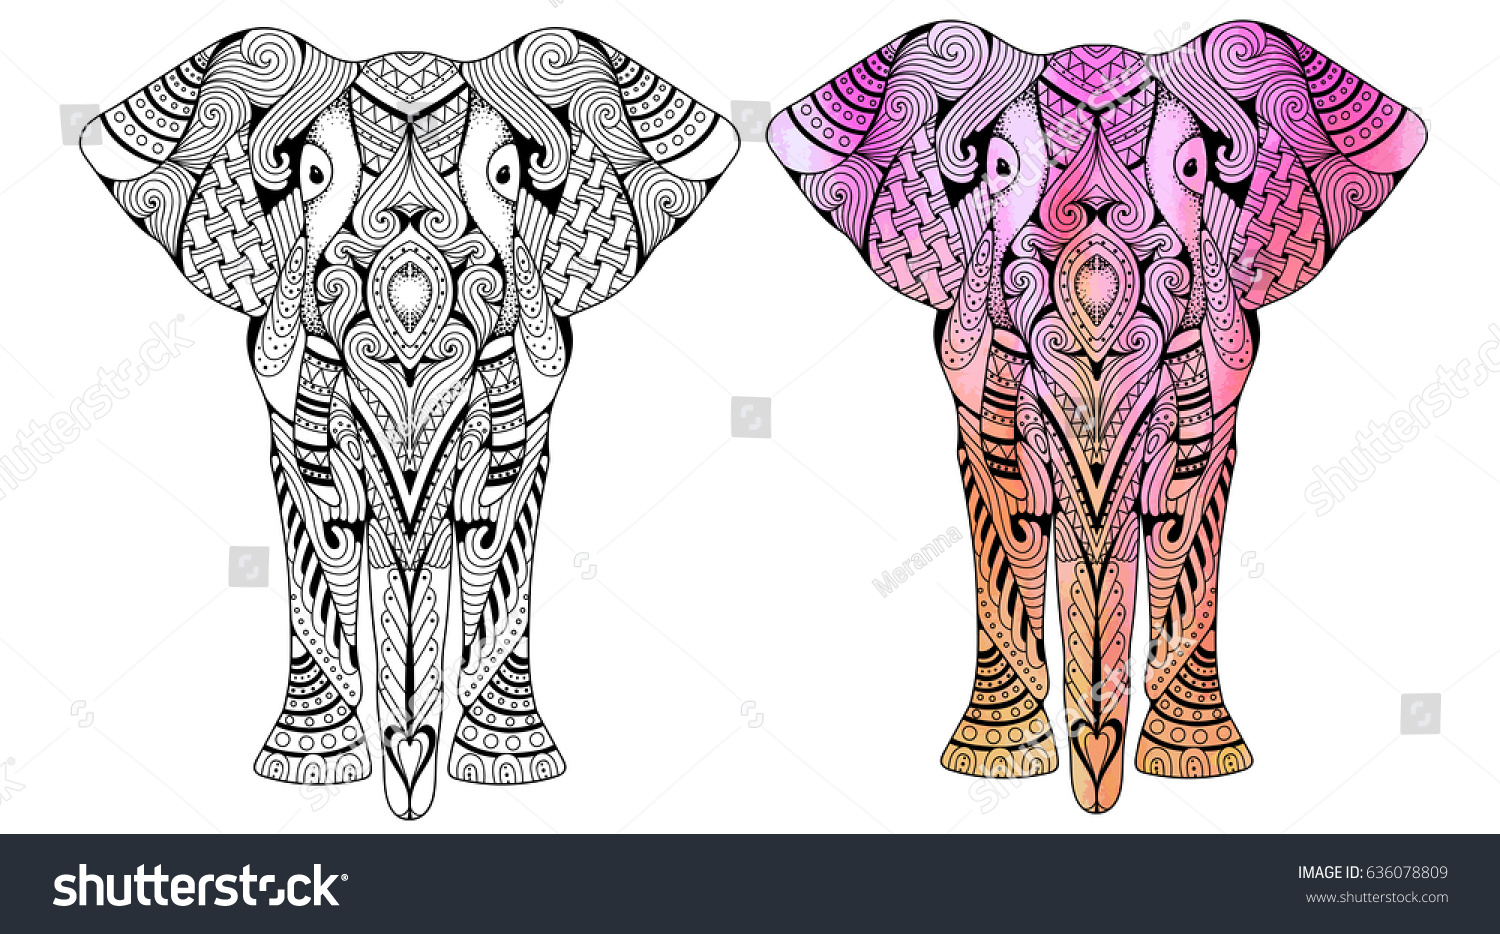 Elephant Coloring Book Adults Vector Illustration Stock Vector